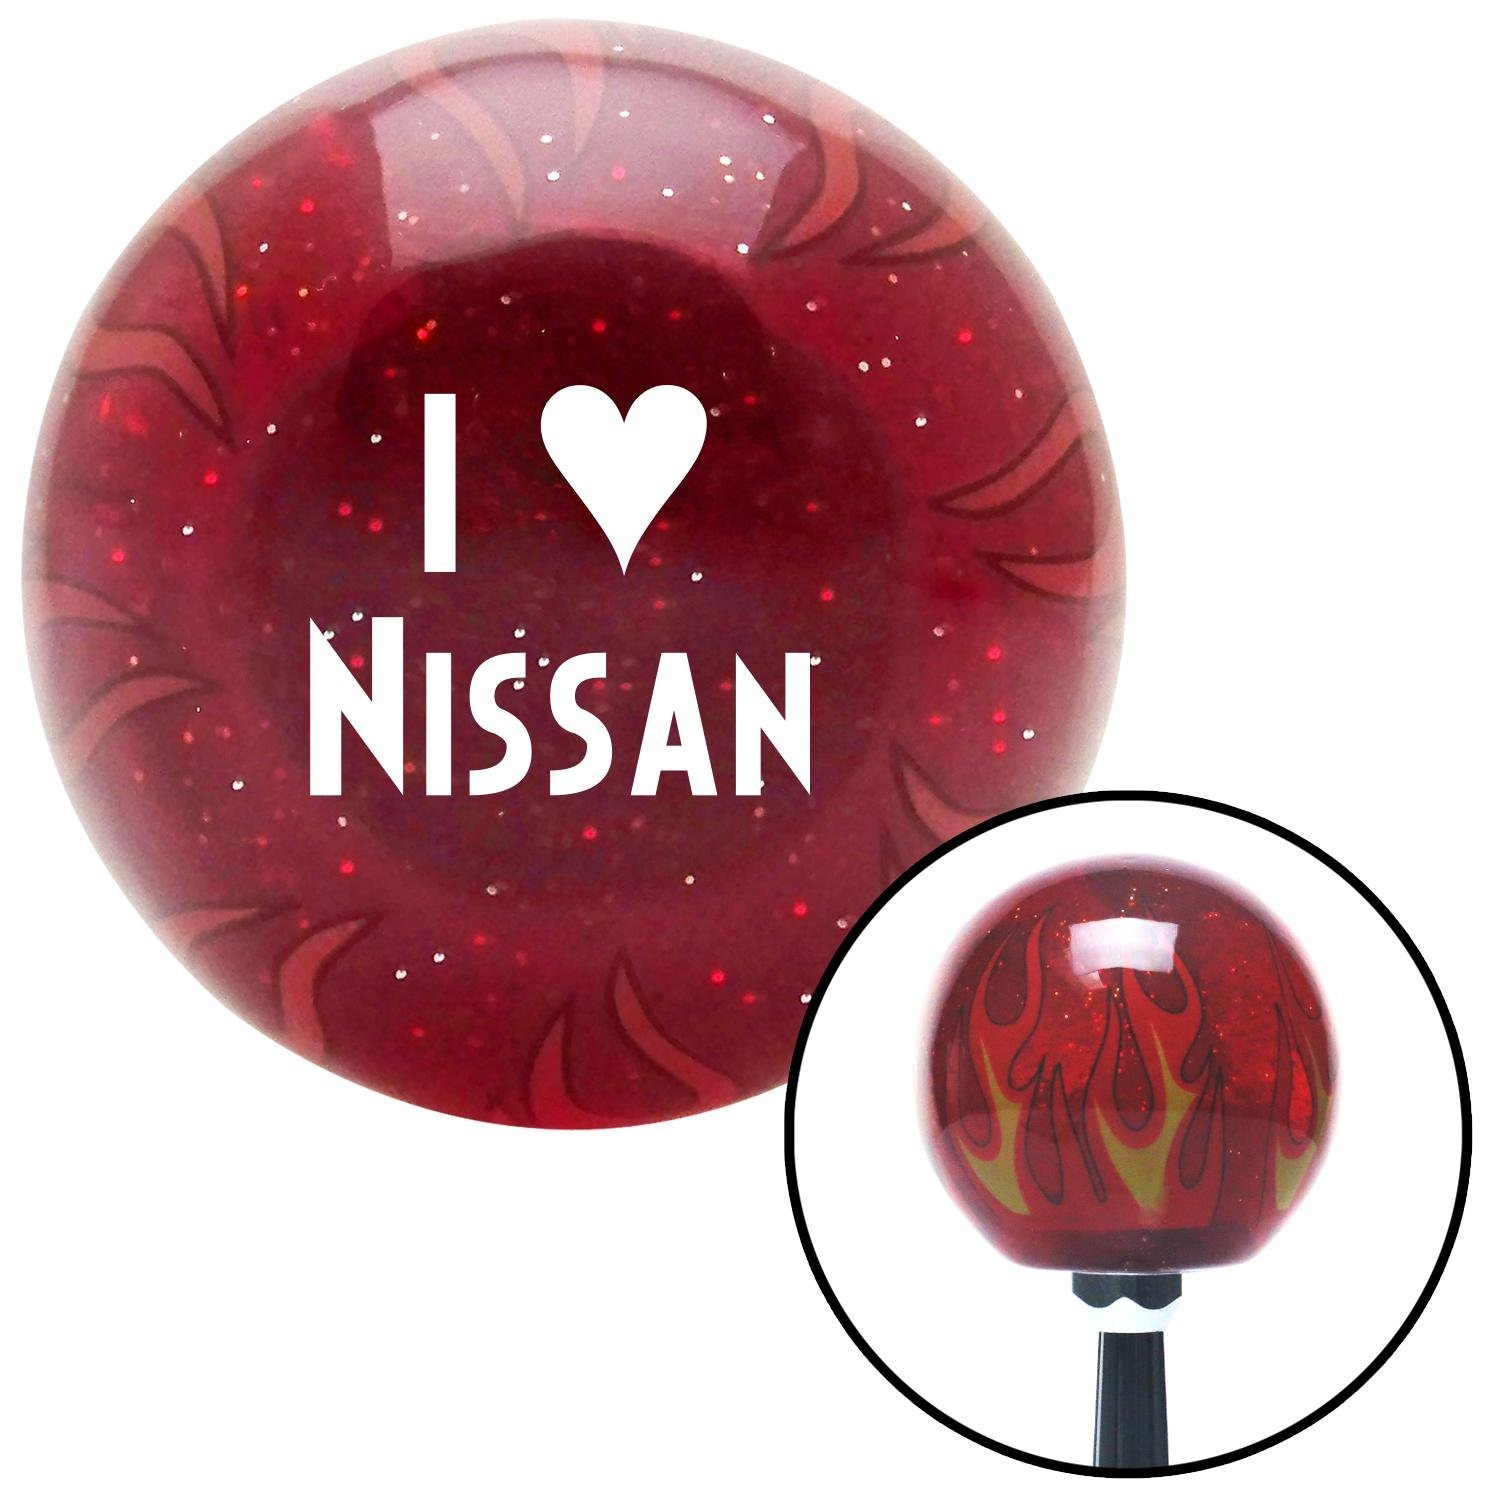 White I 3 Nissan American Shifter 237478 Red Flame Metal Flake Shift Knob with M16 x 1.5 Insert